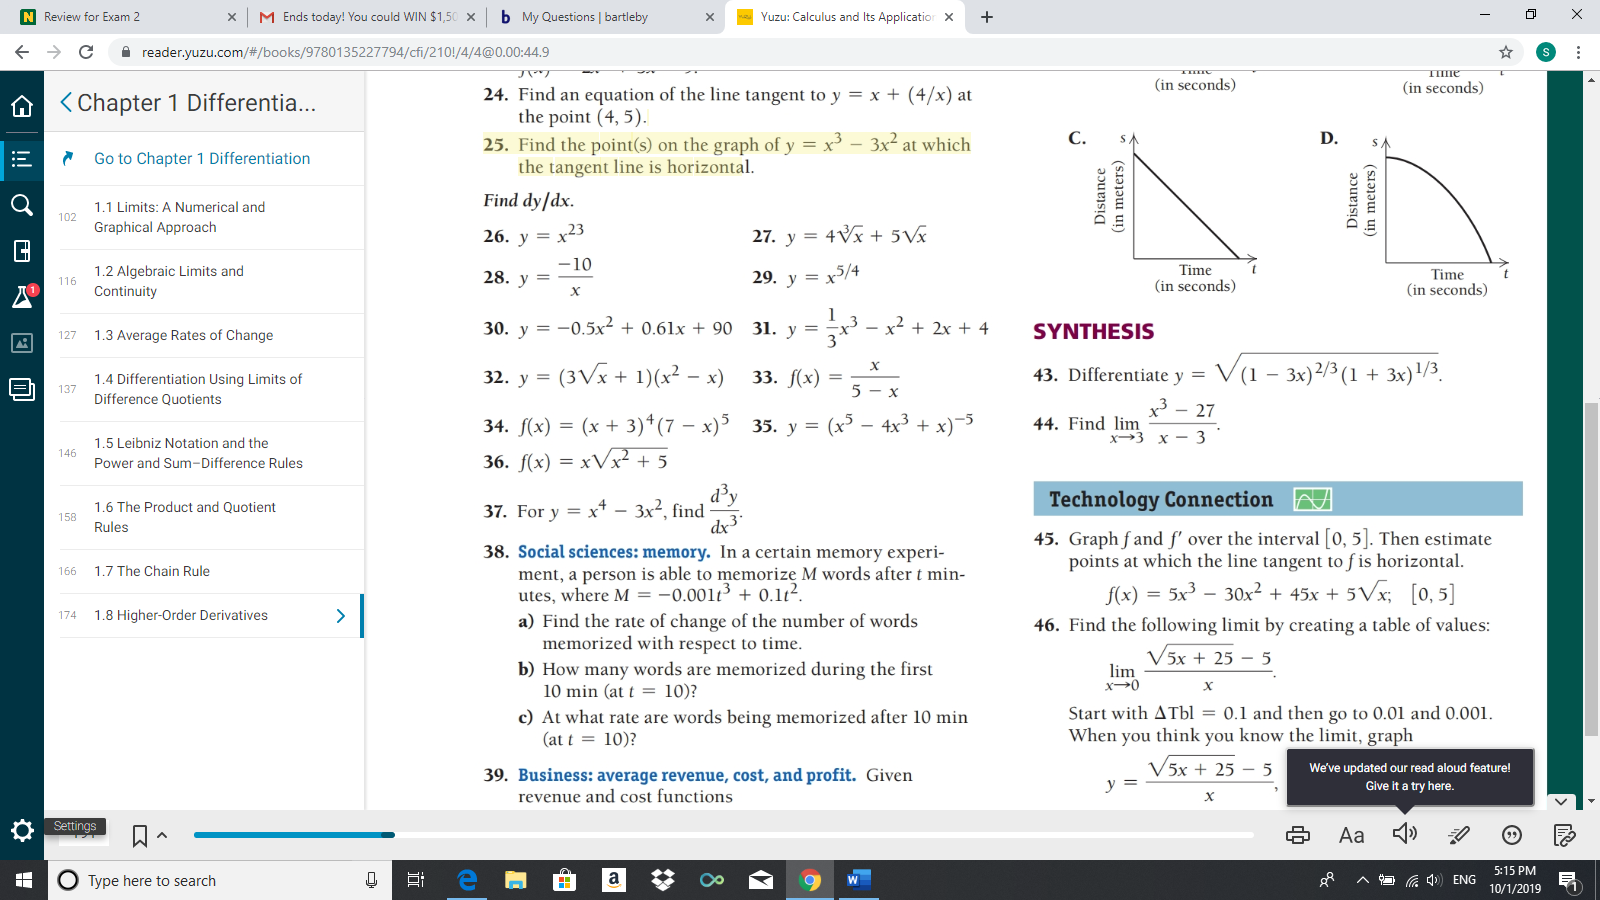 M Ends today! You could WIN $1,50 b My Questions bartleby N Review for Exam 2 Yuzu: Calculus and Its Application X X X с reader.yuzu.com/#/books/9780135227794/cfi/210!/4/4@0.00:44.9 ПІПЕ (in seconds) (in seconds) 24. Find an equation of the line tangent to y = x + (4/x) at the point (4, 5). 25. Find the point(s) on the graph of y x the tangent line is horizontal Chapter 1 Differentia... С. D. 3x2 at which Go to Chapter 1 Differentiation Find dy/dx 1.1 Limits: A Numerical and 102 Graphical Approach x23 27. y 4x + 5Vx 26. у 10 Time (in seconds 1.2 Algebraic Limits and Continuity 28. у 29. у %3D х5/4 Time 116 (in seconds X -0.5x 0.61x + 90 31. y x 2x 4 30. у SYNTHESIS = 1.3 Average Rates of Change 127 3 32. y (3Vx 1)(x2 - x) 43. Differentiate y V(1 - 3x)2/3 (1 3x)1/3. 33. f(x) 1.4 Differentiation Using Limits of 5-x Difference Quotients x3 44. Find lim 27 34. f(x) (x 3)4(7 - x)535. y = (x3 - 4x3 36. f(x) xVx + 5 х>3 х — 3 1.5 Leibniz Notation and the 146 Power and Sum-Differe Technology Connection xt3x2, find 1.6 The Product and Quotient 37. For y = 158 Rules 45. Graph fand f' over the interval [0, 5]. Then estimate points at which the line tangent to f is horizontal - 5Vx [0,5] 38. Social sciences: memory. In a certain memory experi- ment, a person is able to memorize M words after t min- utes, where M = -0.001t + 0.1t2. a) Find the rate of change of the number of words memorized with respect to time b) How many words are memorized during the first 10 min (at t 10)? c) At what rate are words being memorized after 10 min (at t10)? 1.7 The Chain Rule 166 = 5x 30x2 + 45x + f(x) 1.8 Higher-Order Derivatives > 46. Find the following limit by creating a table of values: V5x + 25 5 lim x0 х Start with ATbl = 0.1 and then go to 0.01 and 0.001 When you think you know the limit, graph V5x +25 5 We've updated our read aloud feature! Give it a try here. 39. Business: average revenue, cost, and profit. Given revenue and cost functions у 3 х Settings Aa 5:15 PM Distance (in meters)